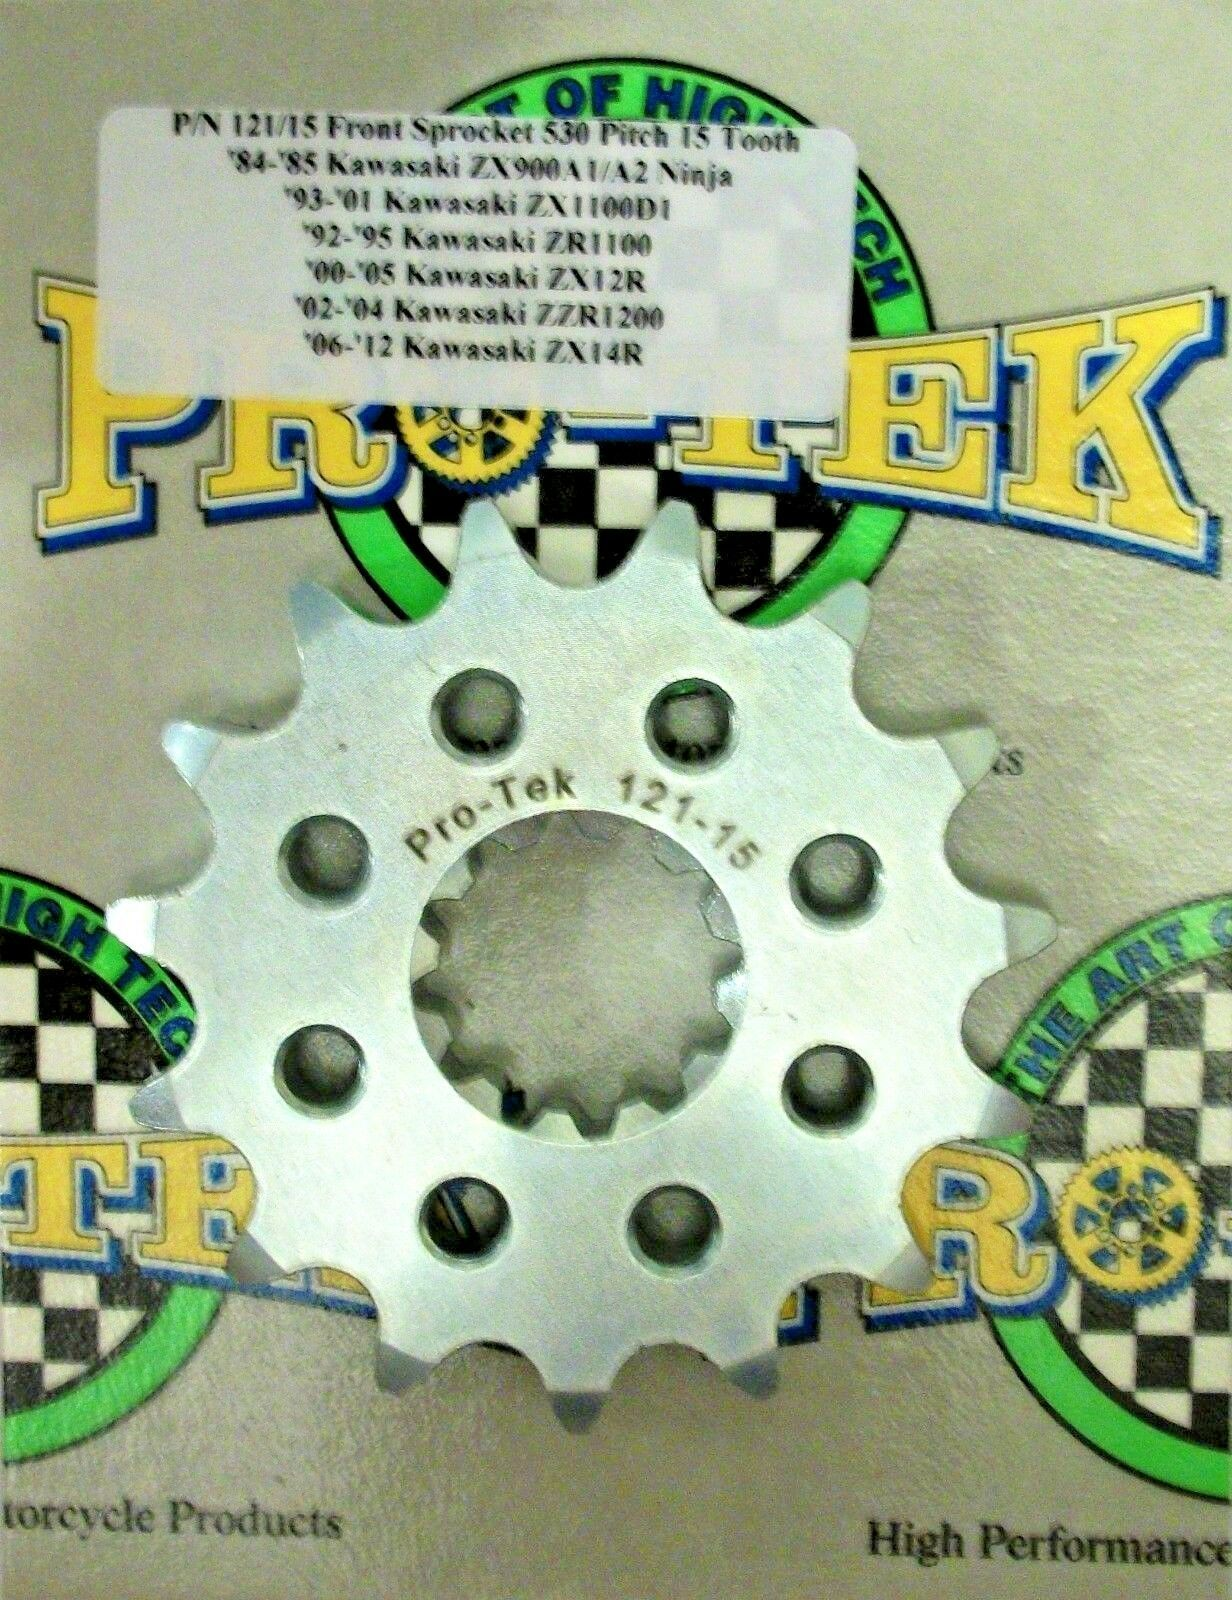 Primary image for Kawasaki Front Sprocket 530 Pitch 15T 16T 17T 18T 2000 2001 2002 Ninja ZX12R